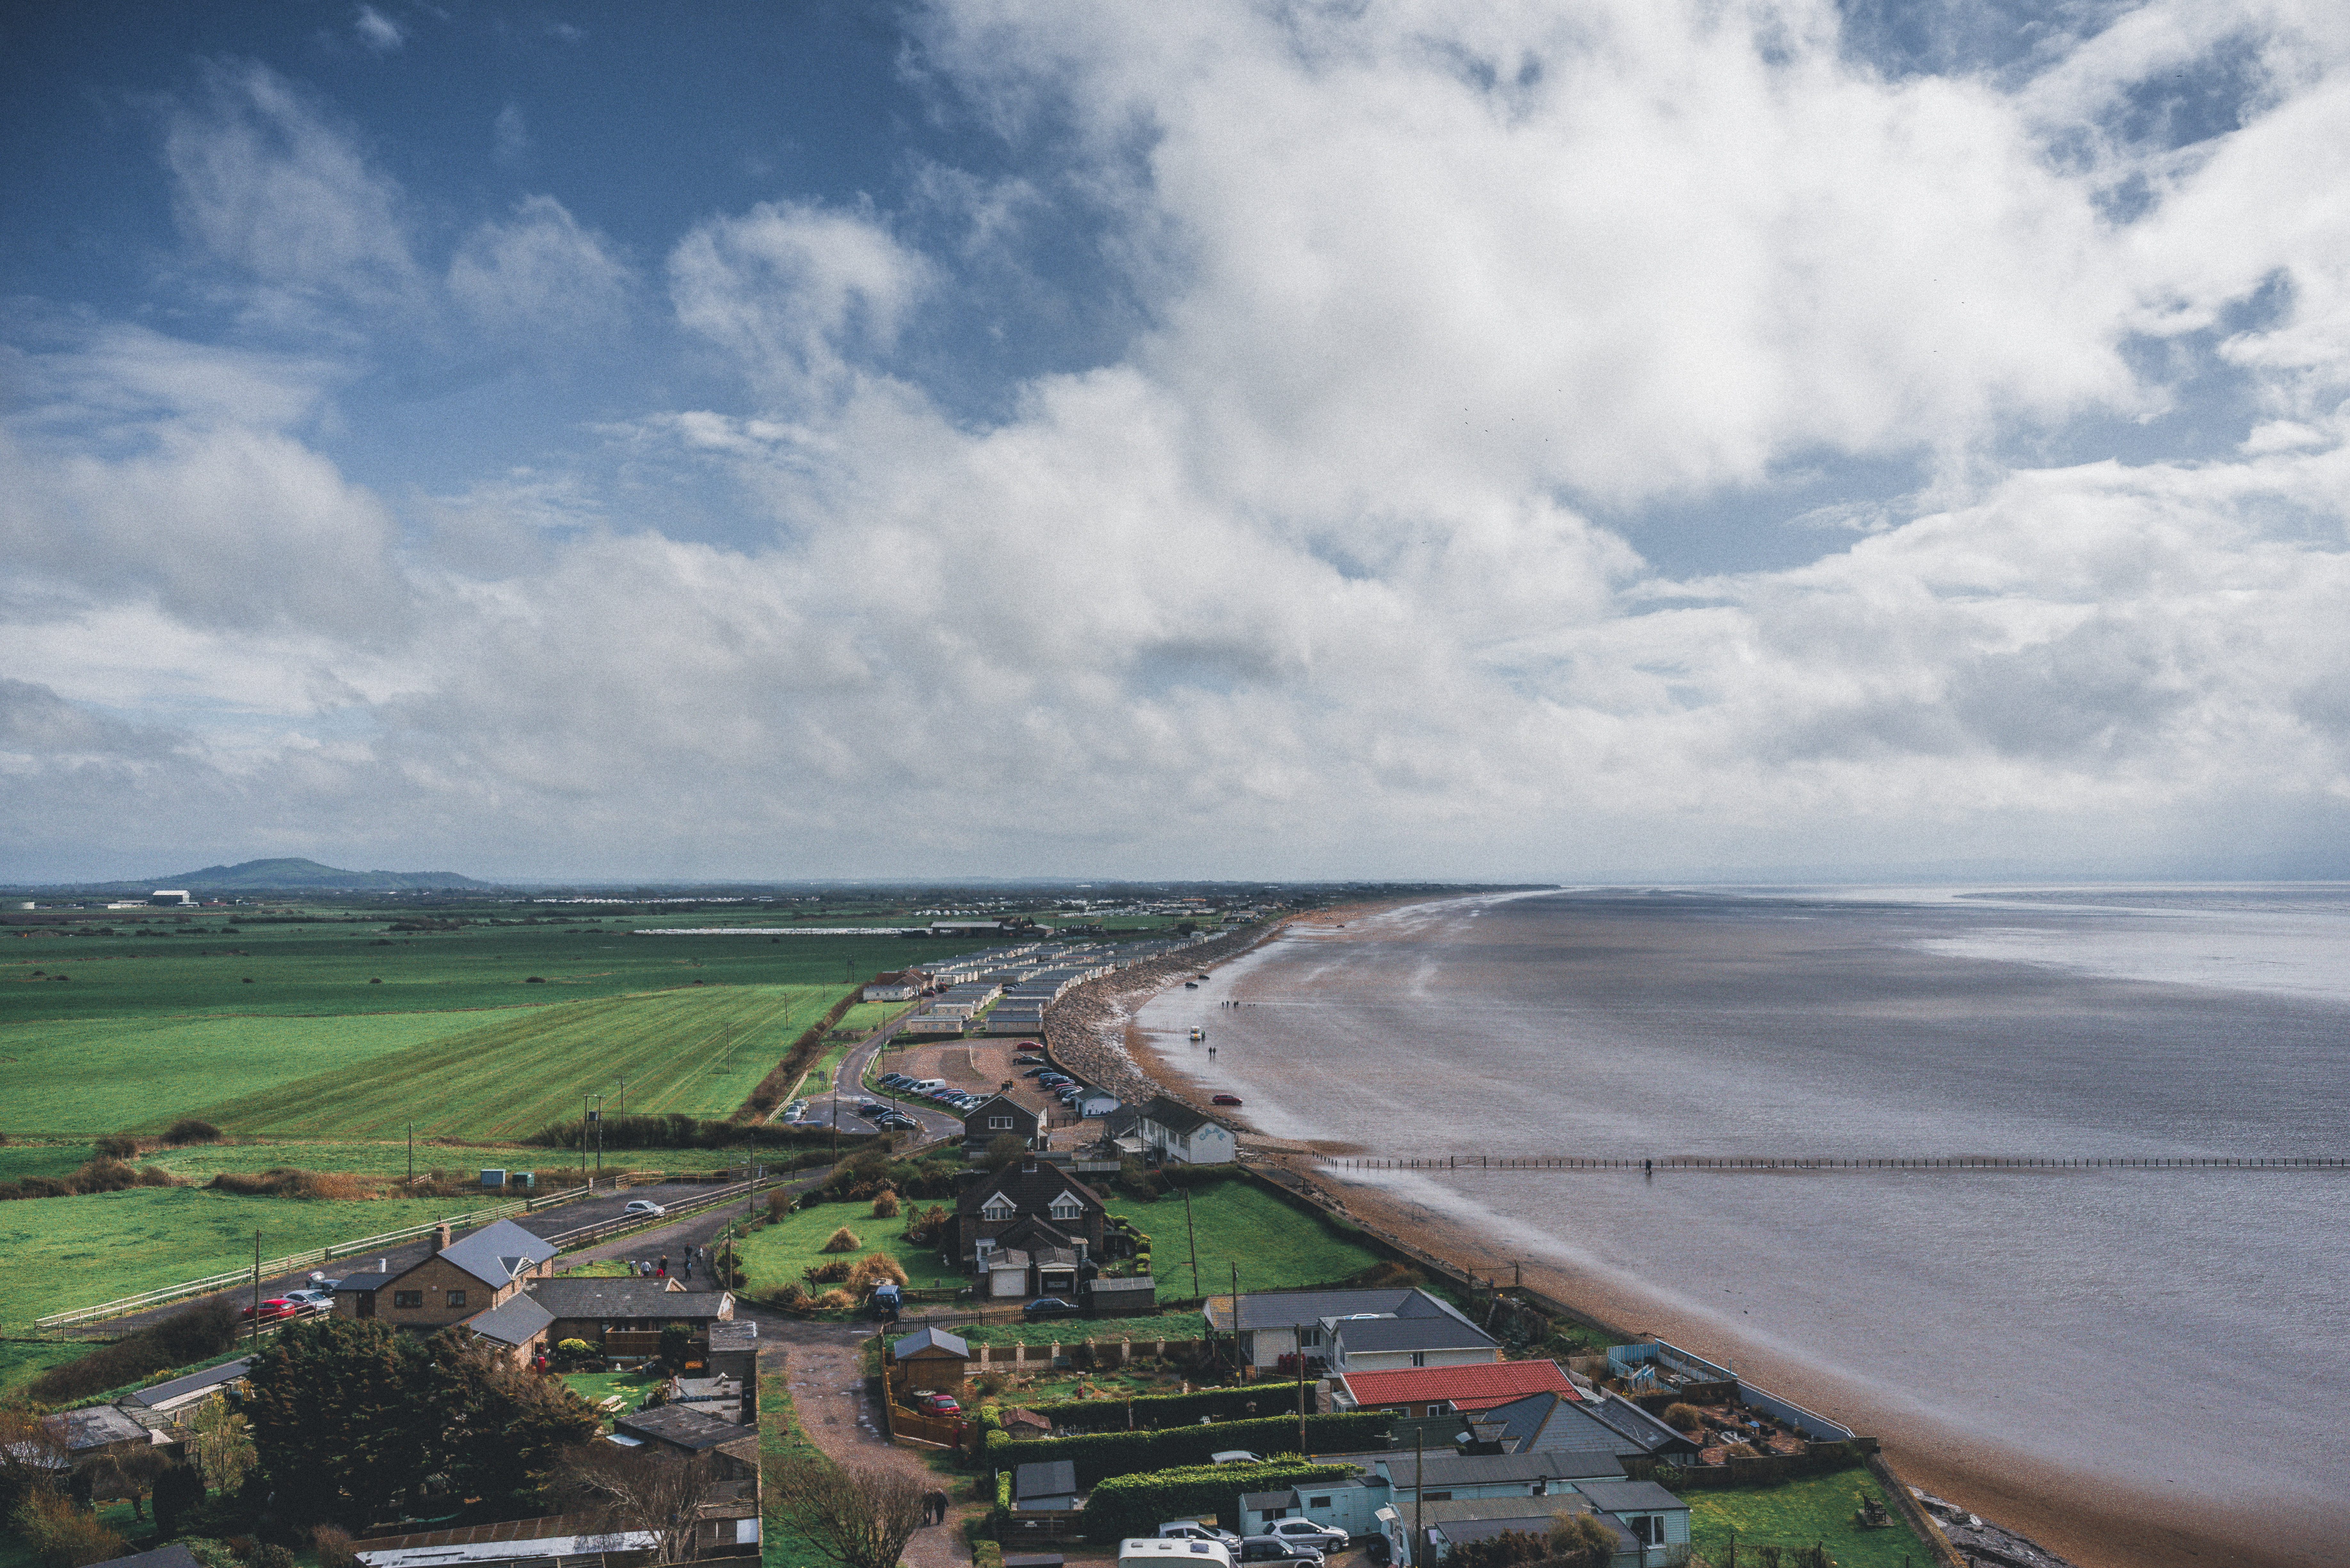 Aerial Photography of Seaside